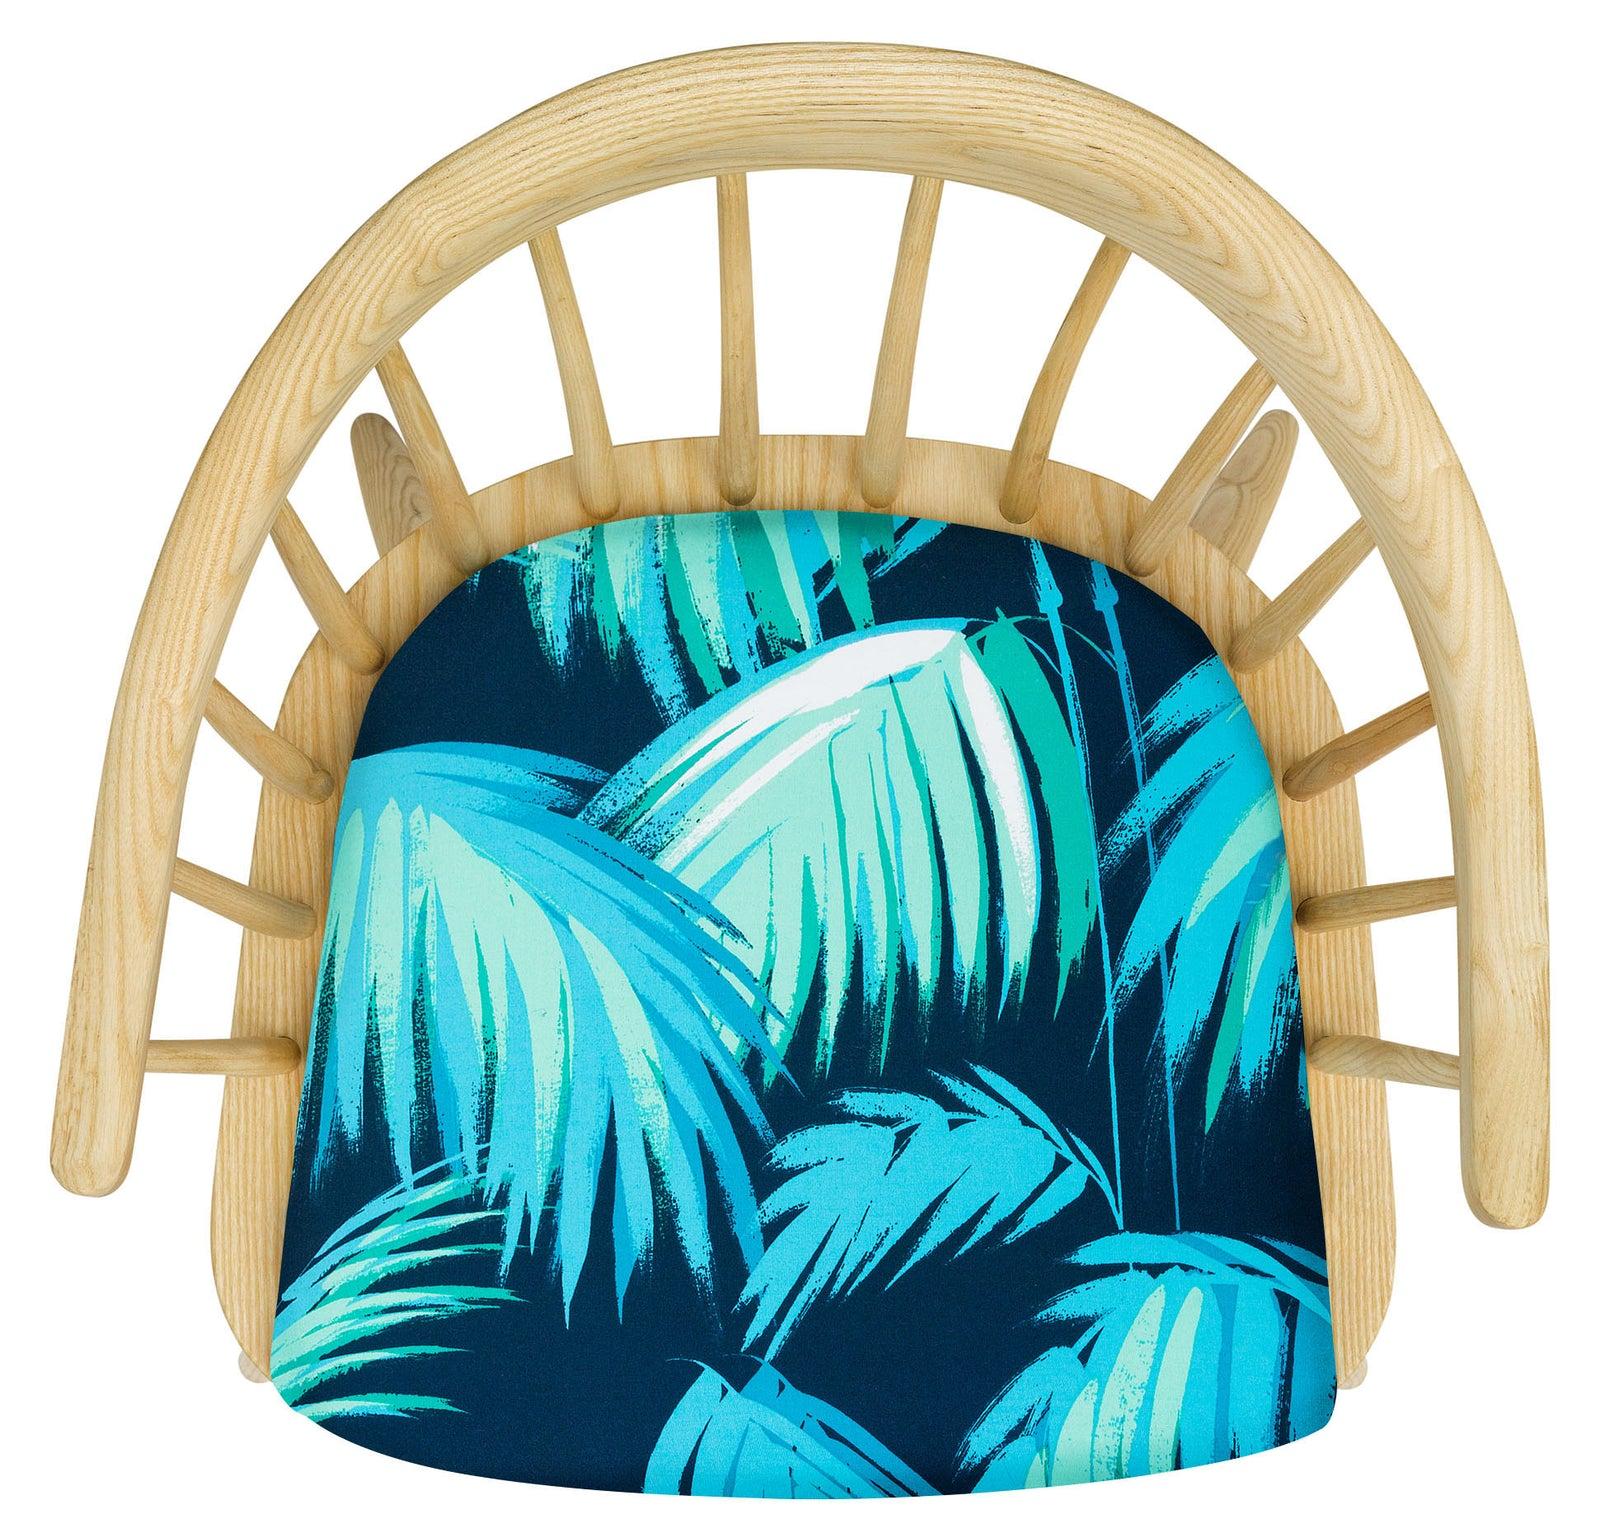 The Stunning Darwin Armchair Upholstered in Tropicana by Matthew Williamson